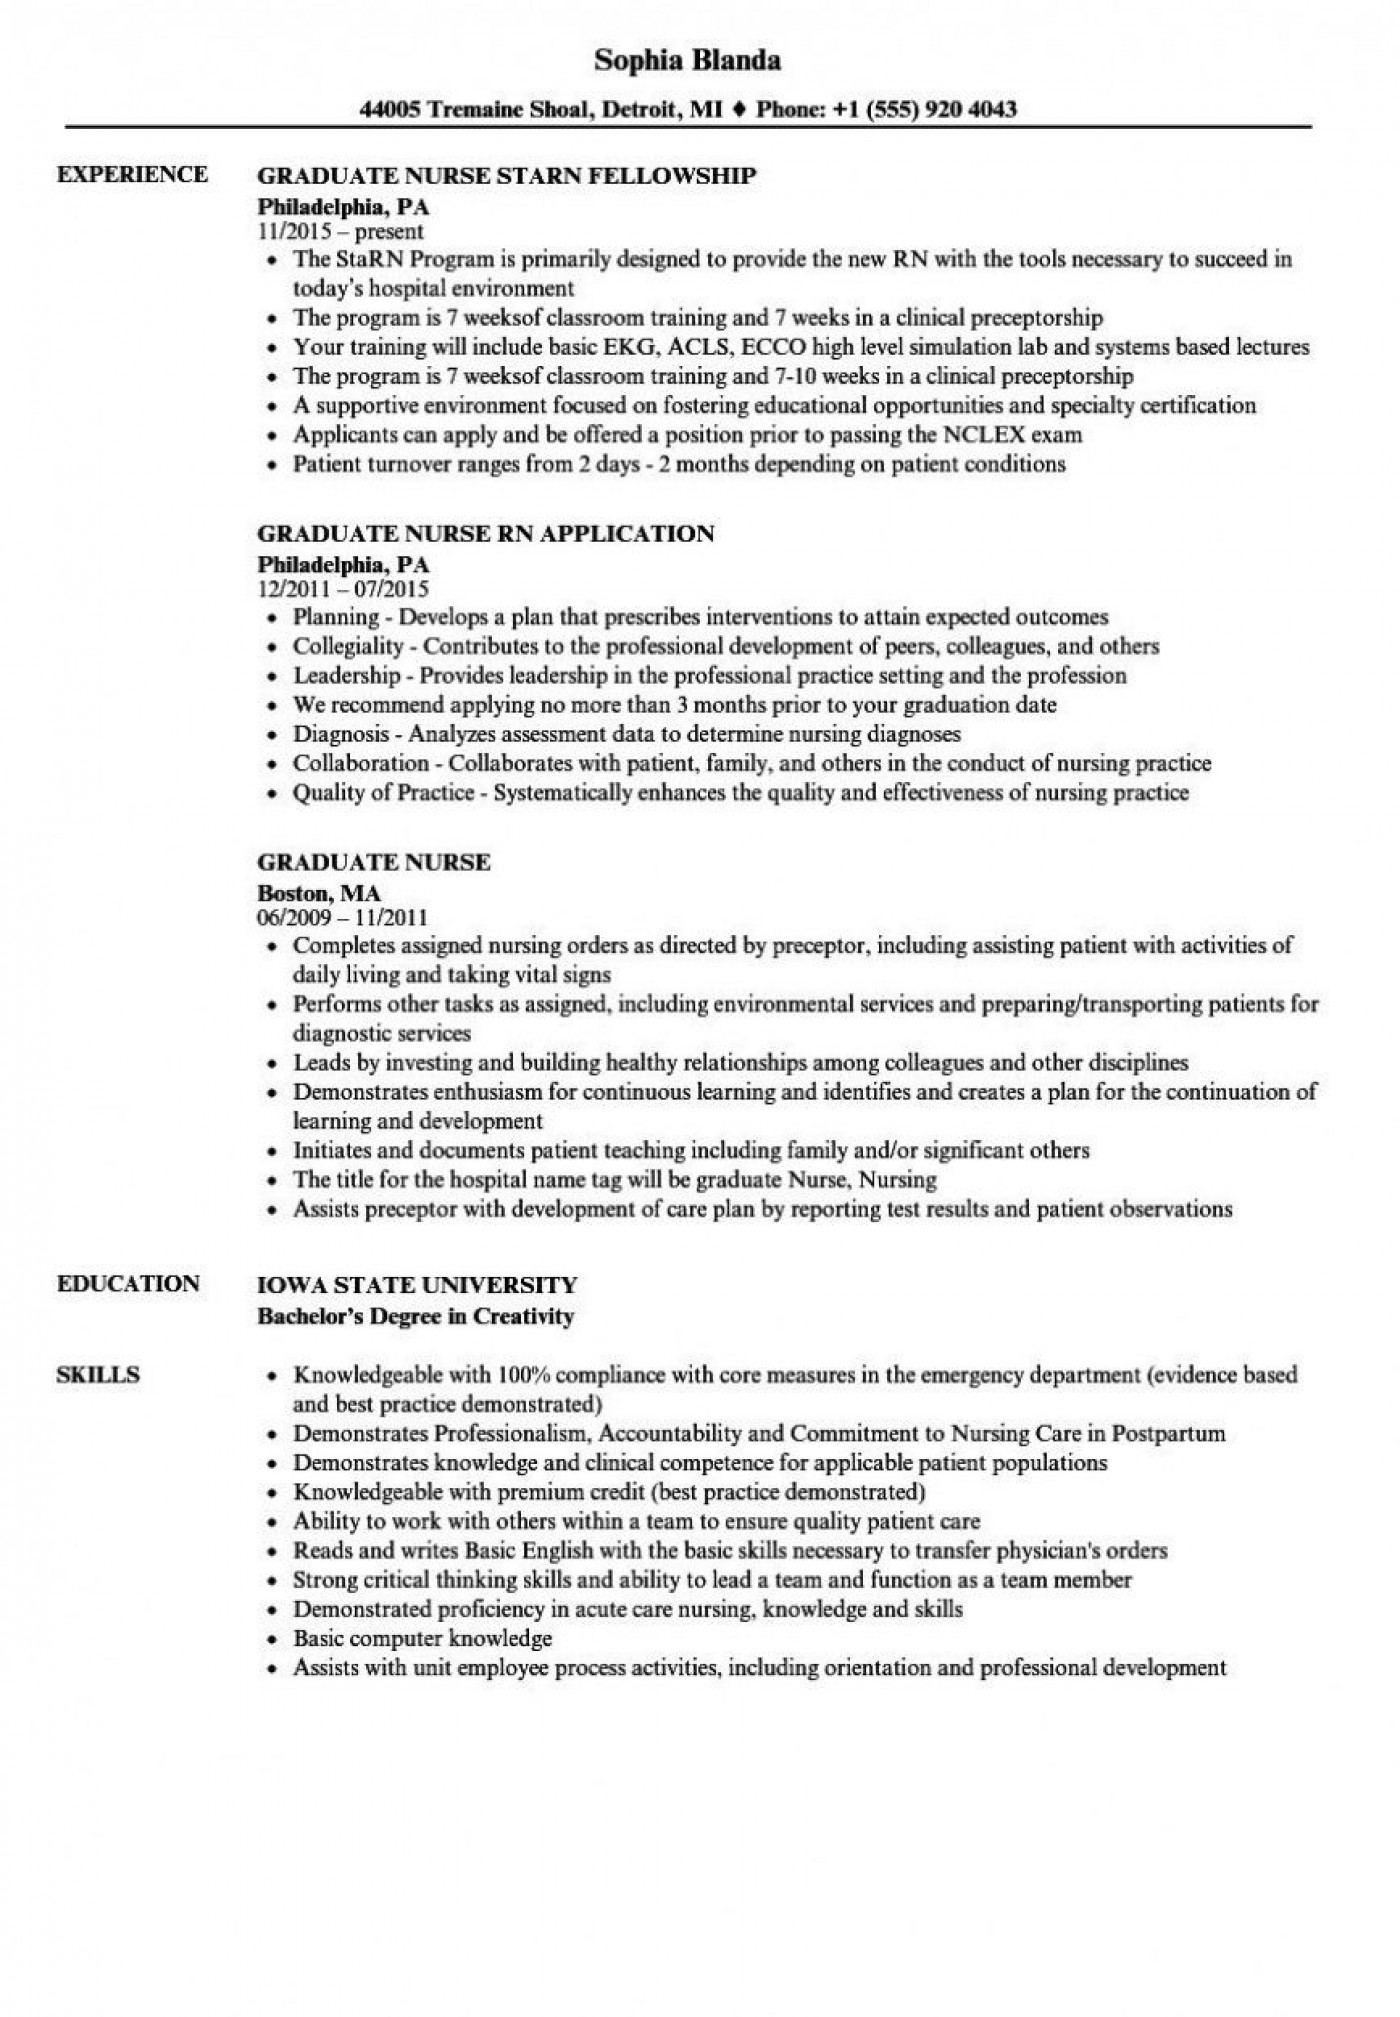 000 Impressive New Grad Nursing Resume Template Example  Graduate Nurse Practitioner1400